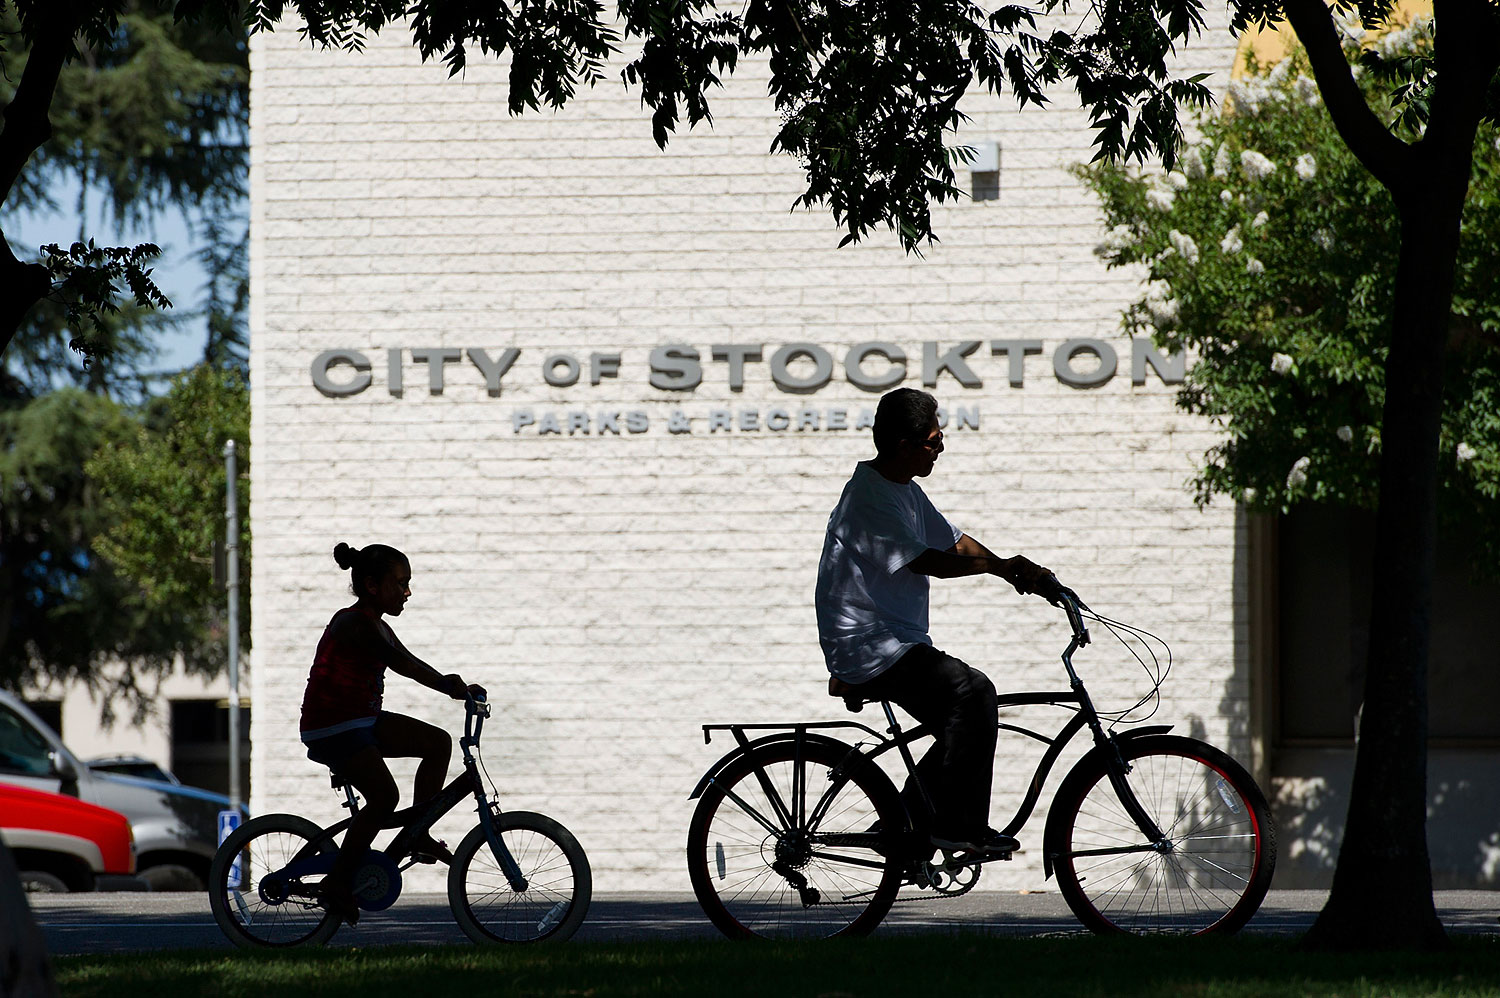 Pedestrians ride their bicycles along the street in Stockton, California, U.S., on June 14, 2012.